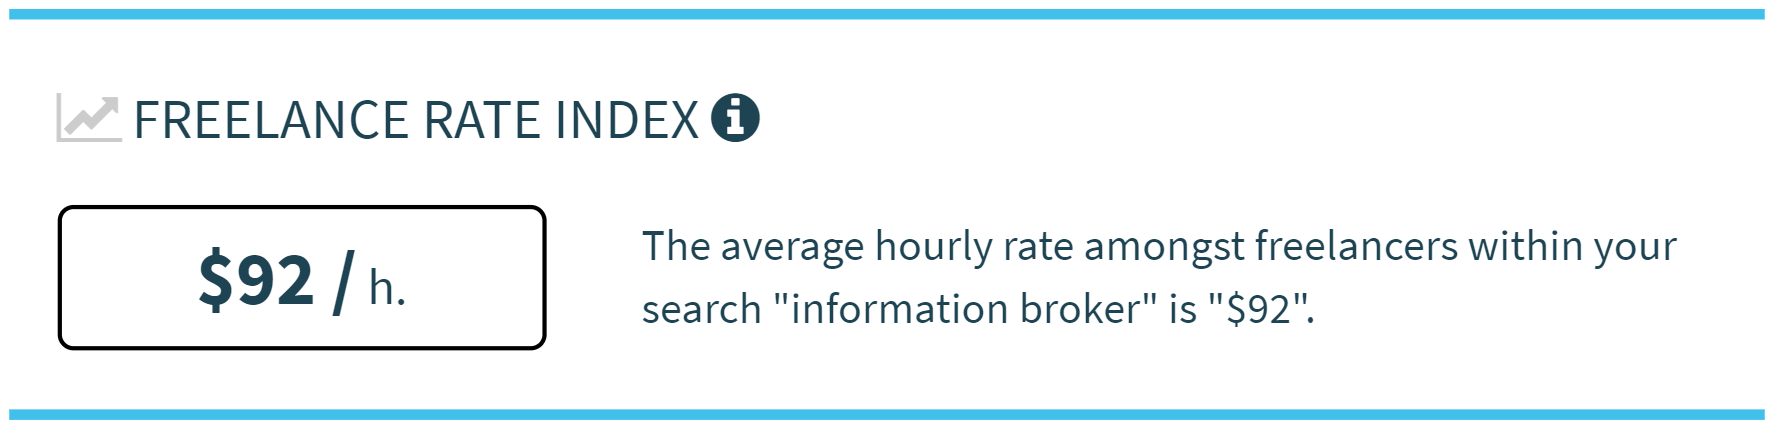 Average Freelance Rate for Information Brokers